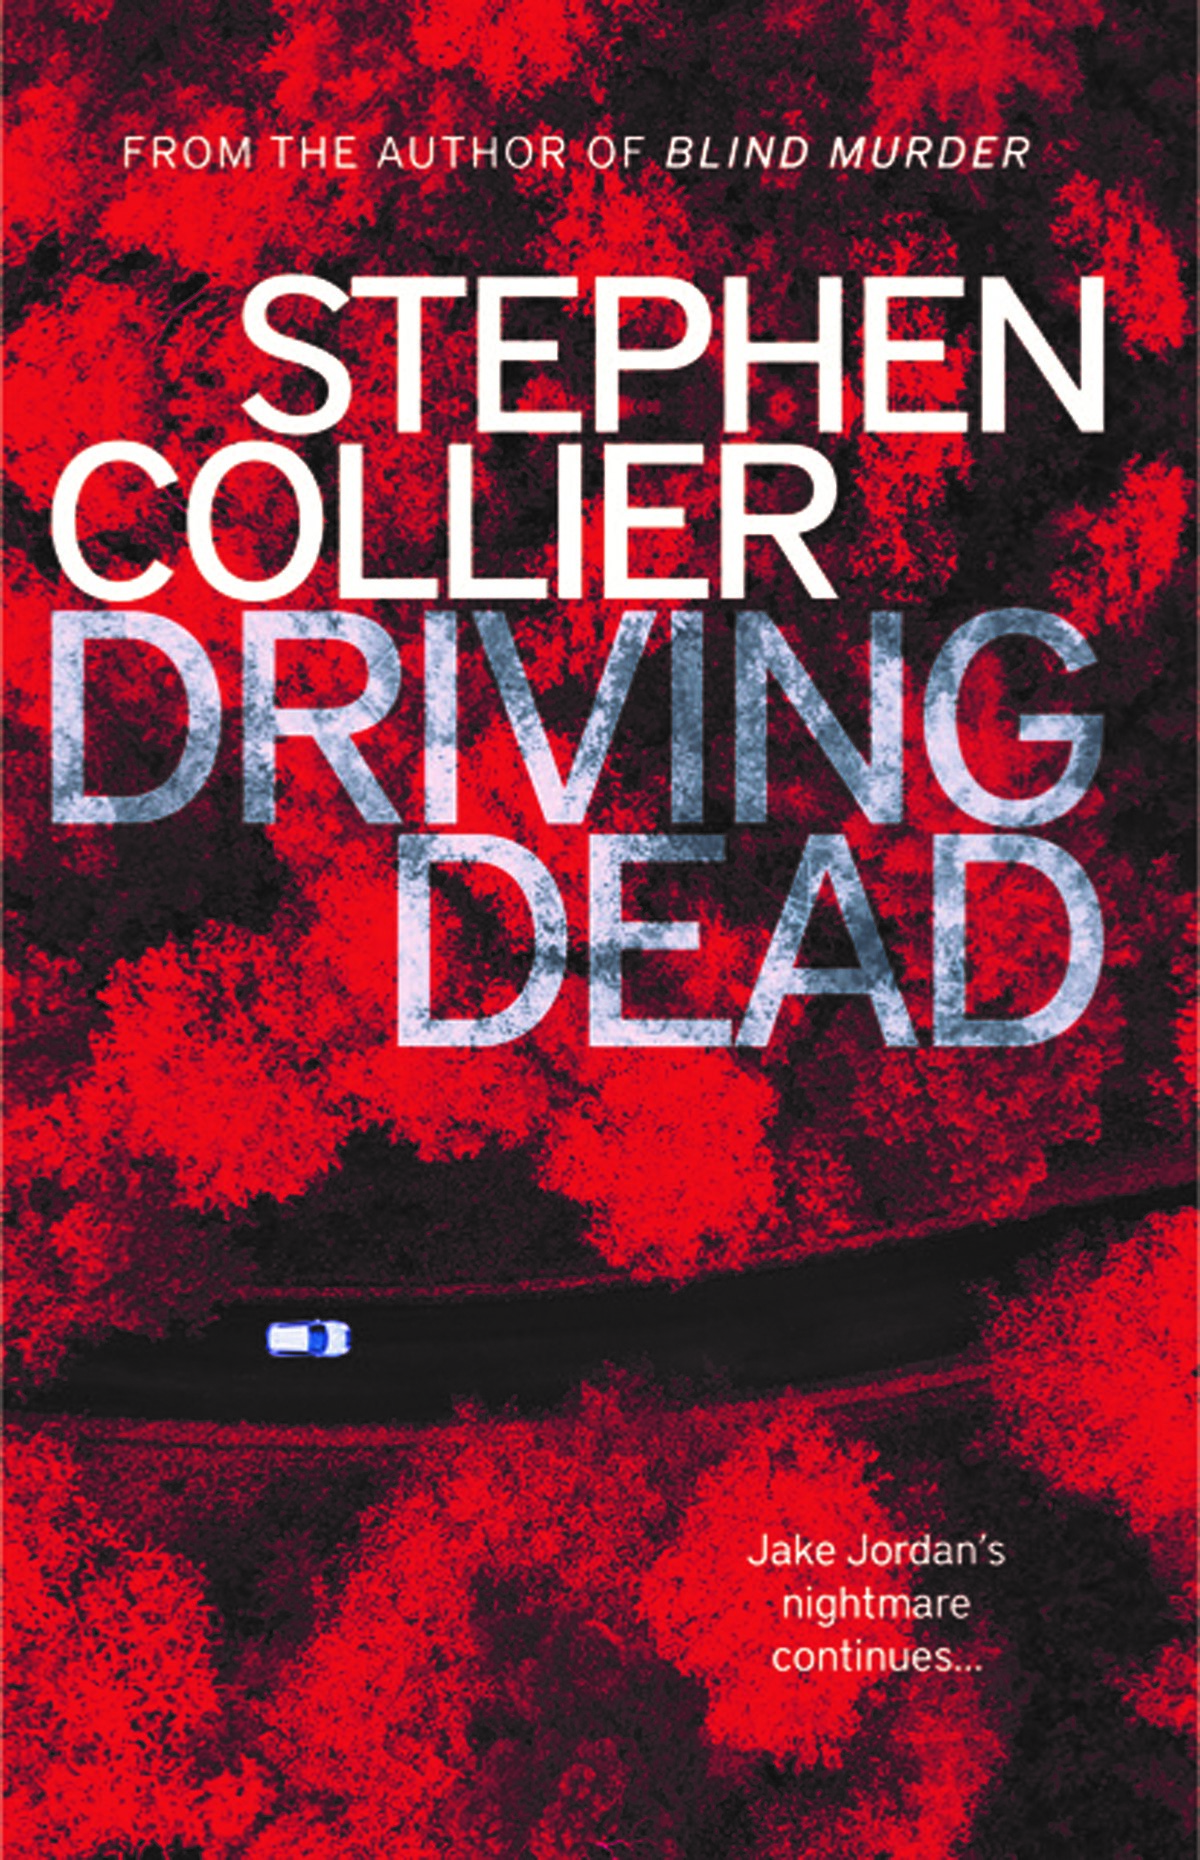 driving dead book cover reveal